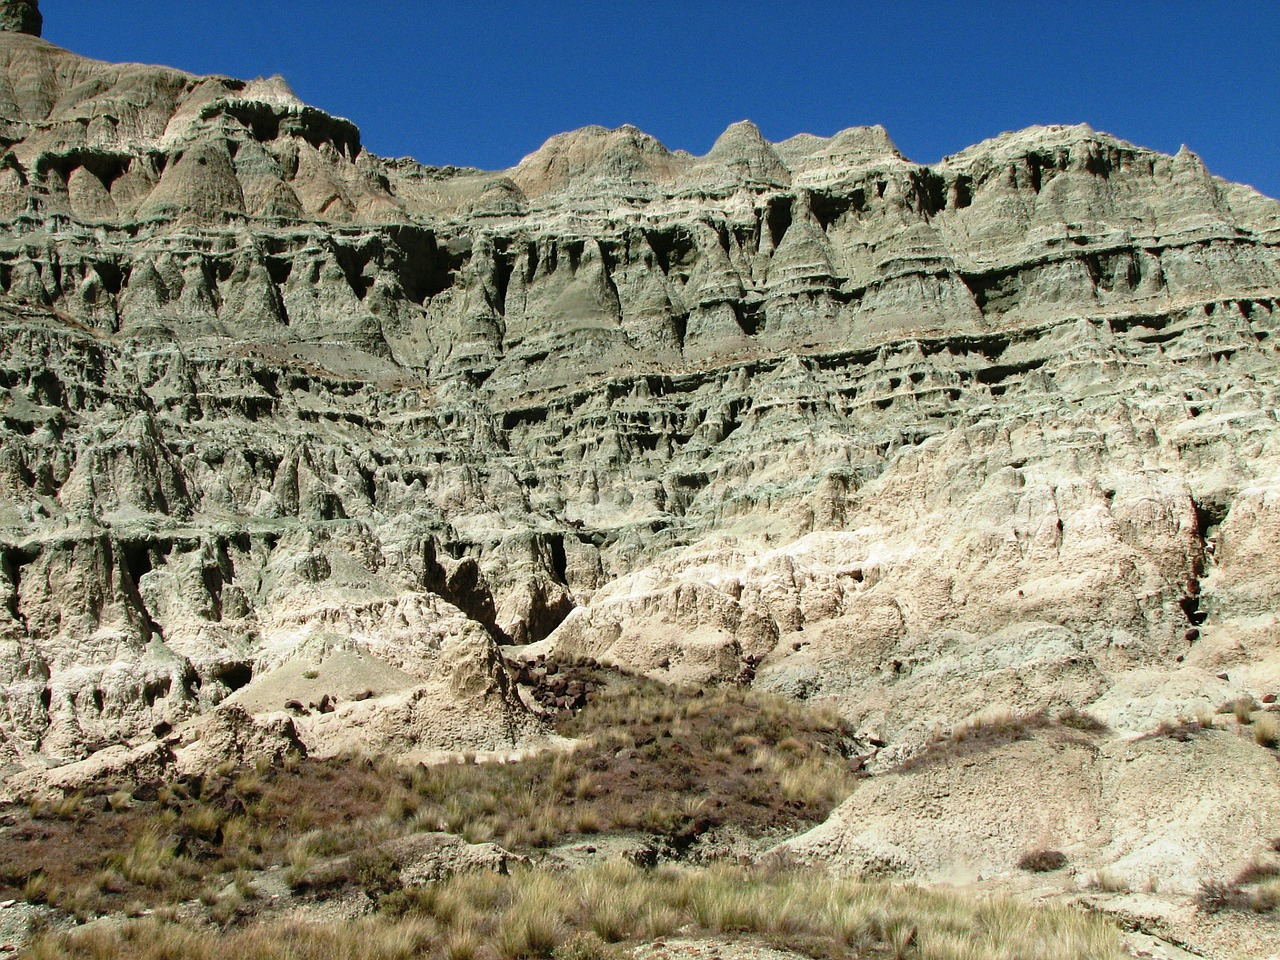 fossil beds,geological,rock formation,john day,national monument,oregon,usa,eastern,green rock,rock layers,free pictures, free photos, free images, royalty free, free illustrations, public domain